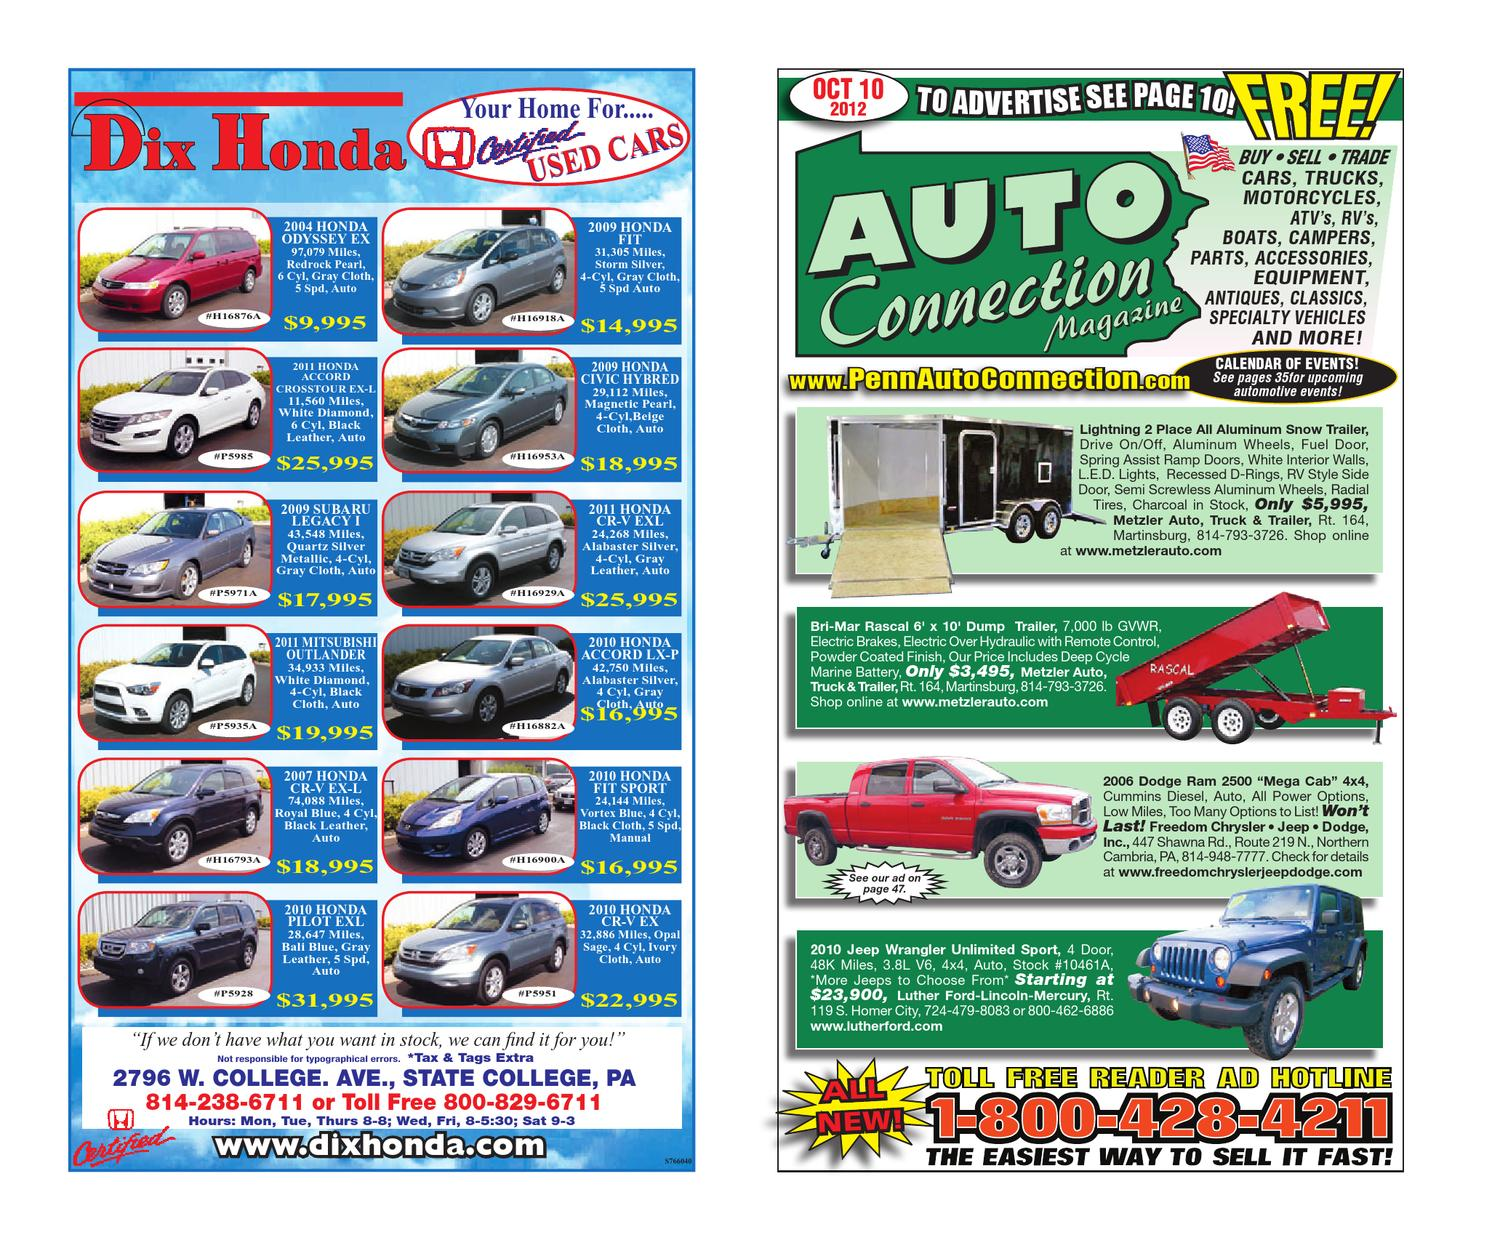 10-10-12 Auto Connection Magazine by Auto Connection